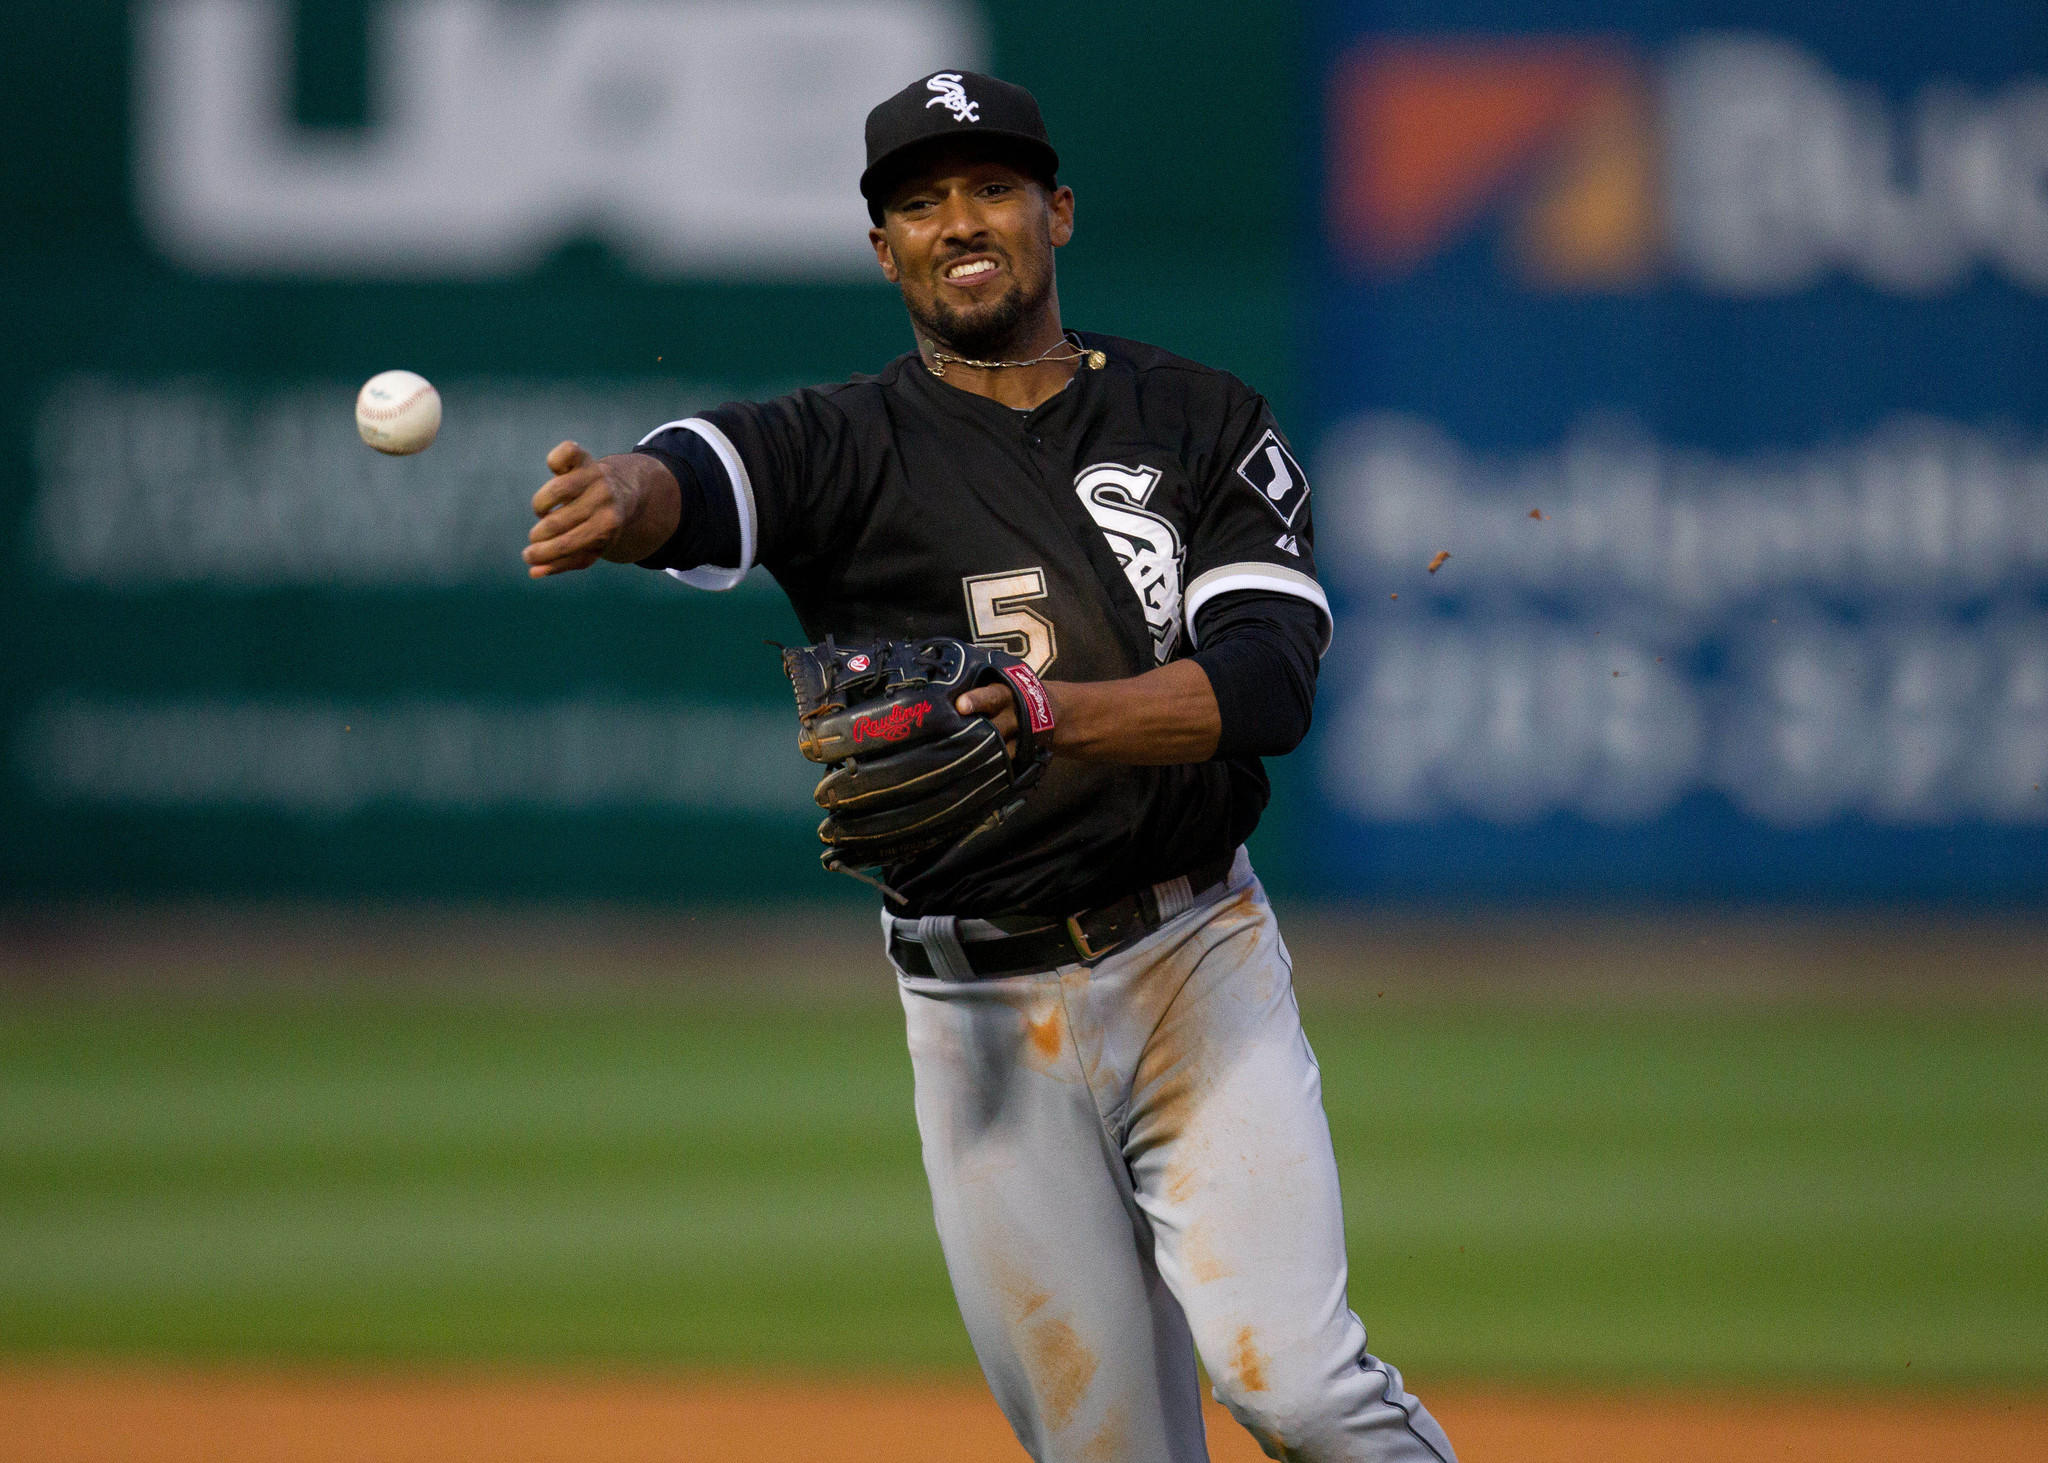 White Sox second baseman Marcus Semien throws the ball to first during the game against the Birmingham Barons at Regions Field.